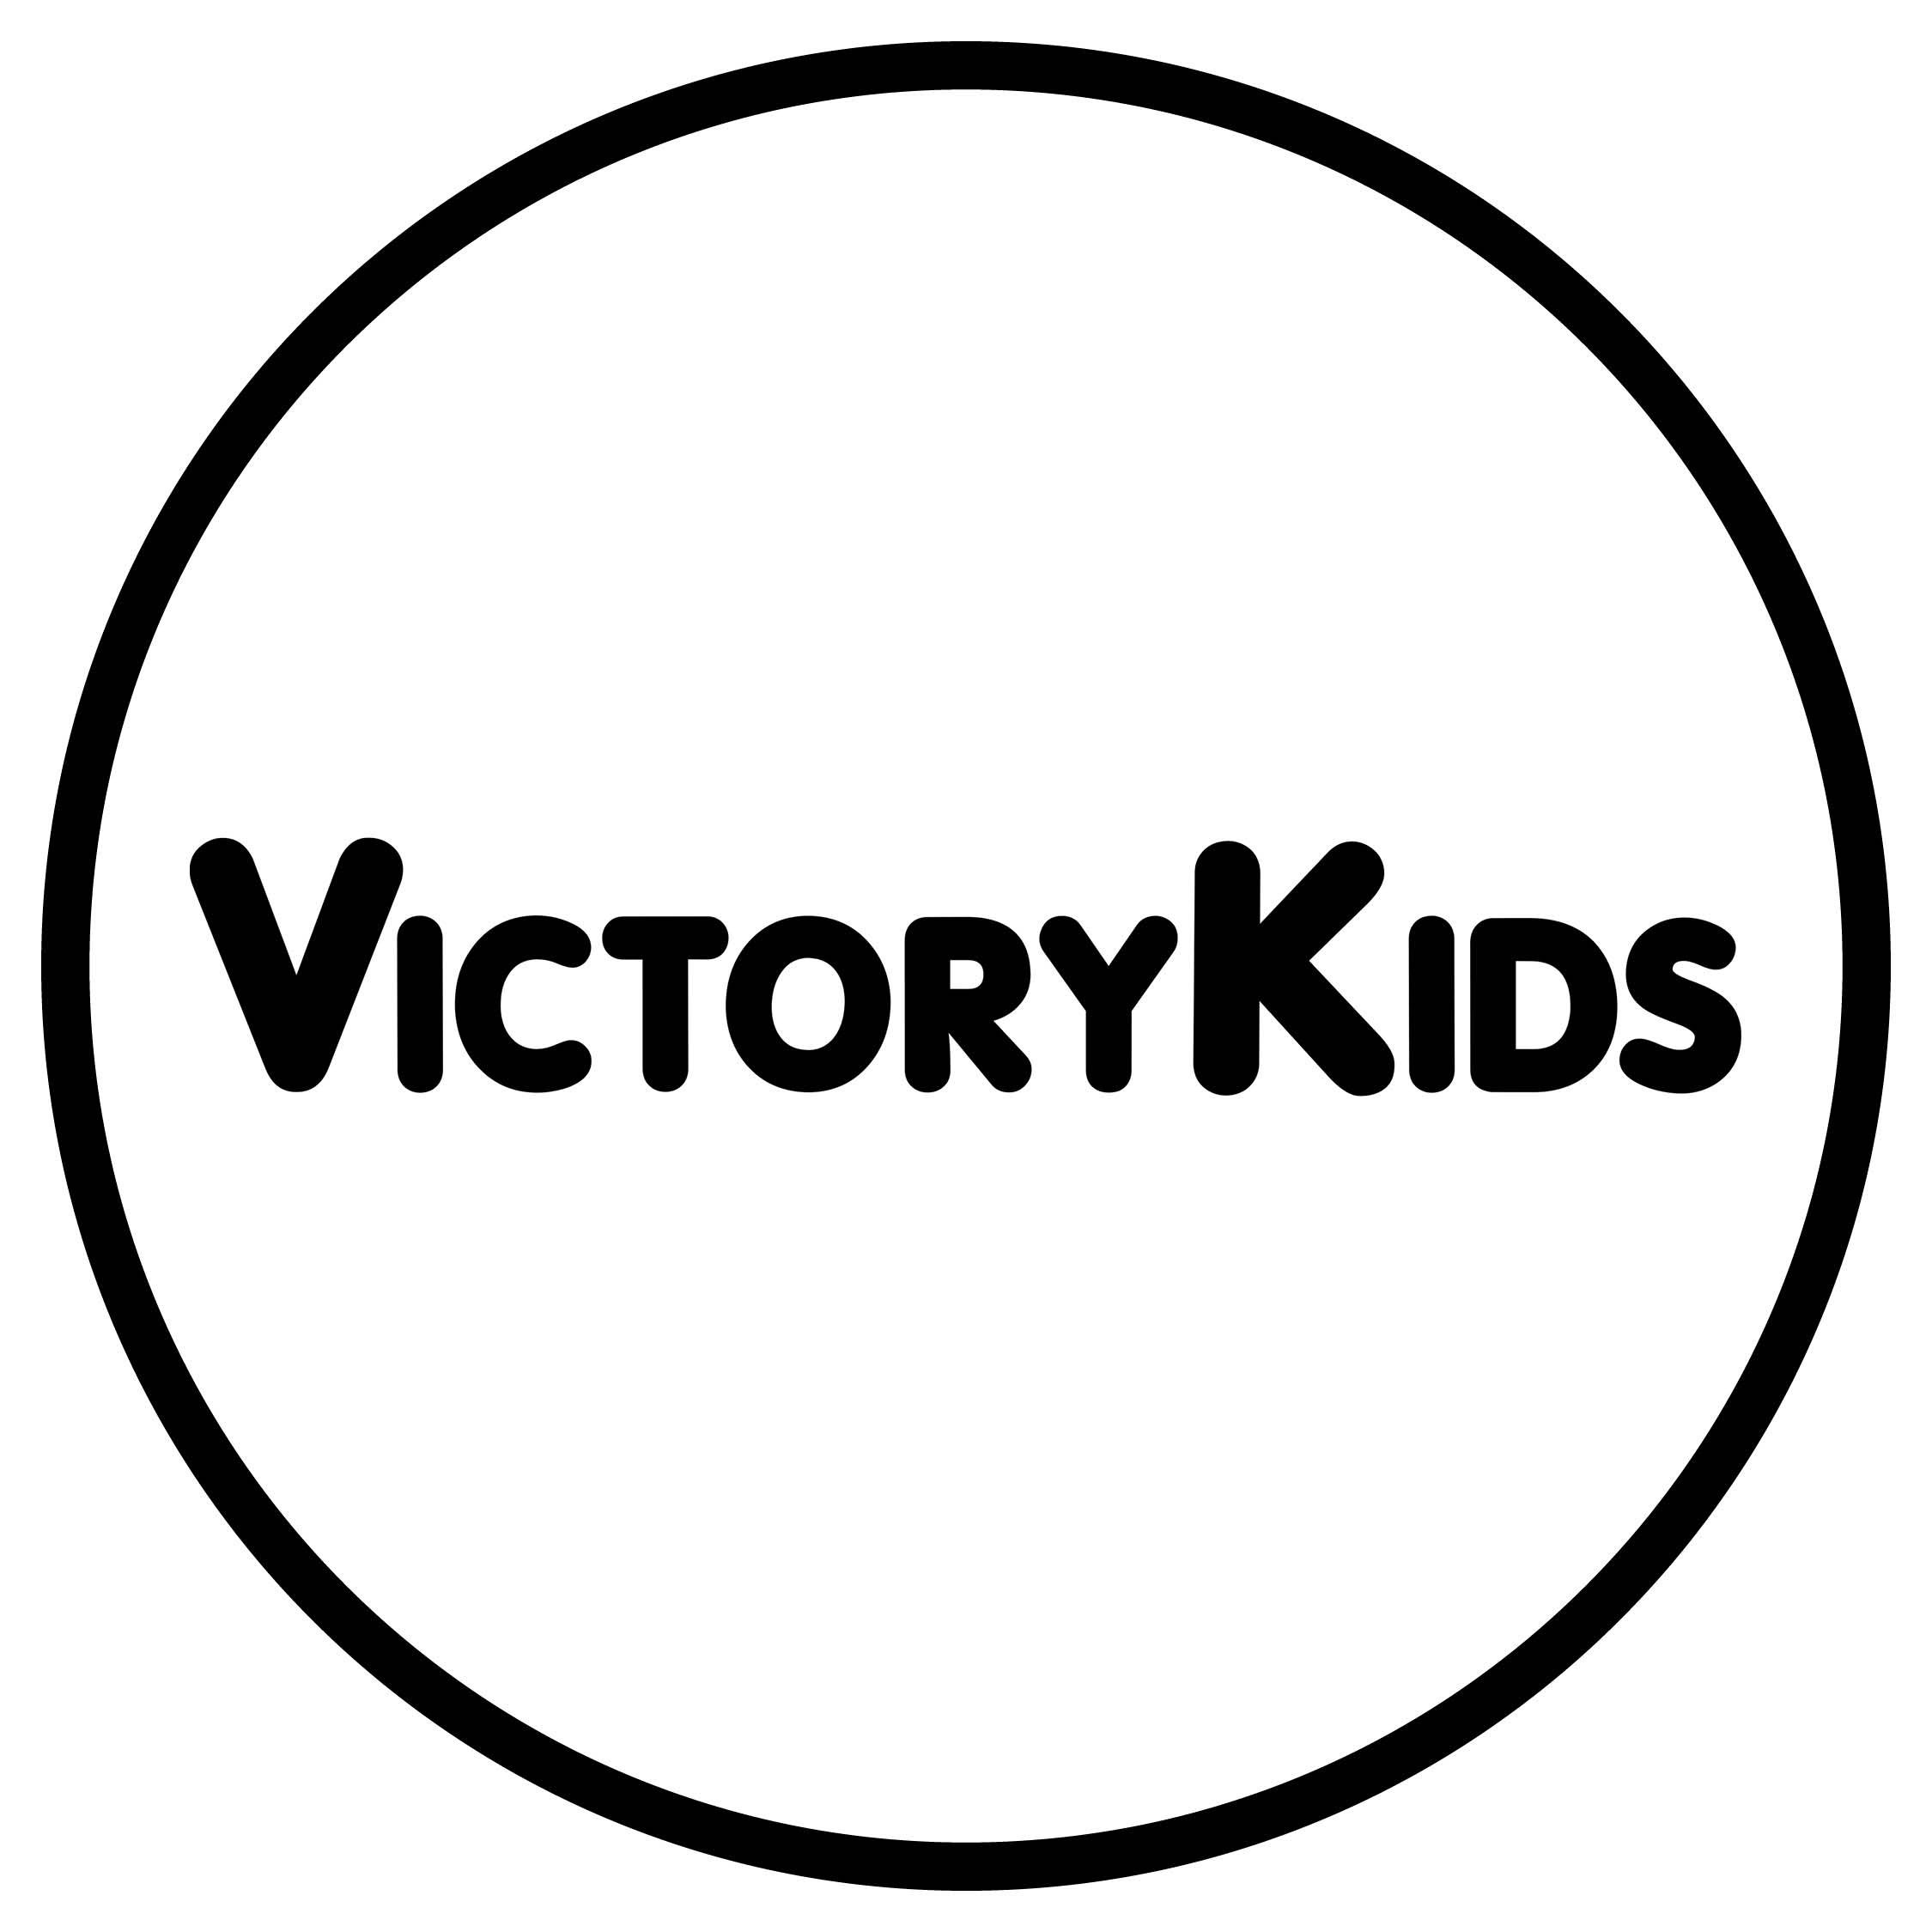 victorykids square logo for website 2.jpg